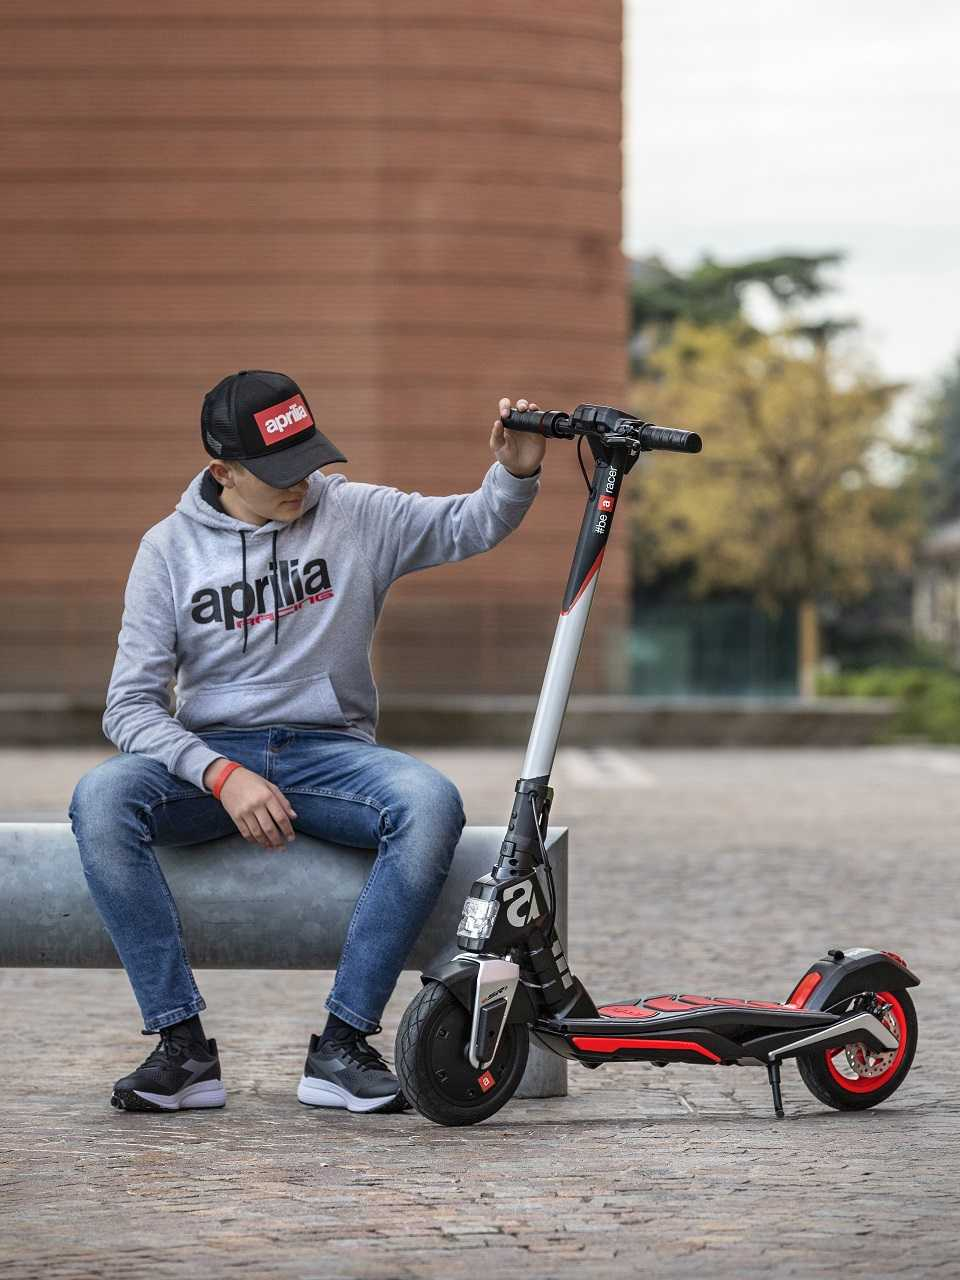 Aprilia eSR1: here is the first electric scooter of the Italian company